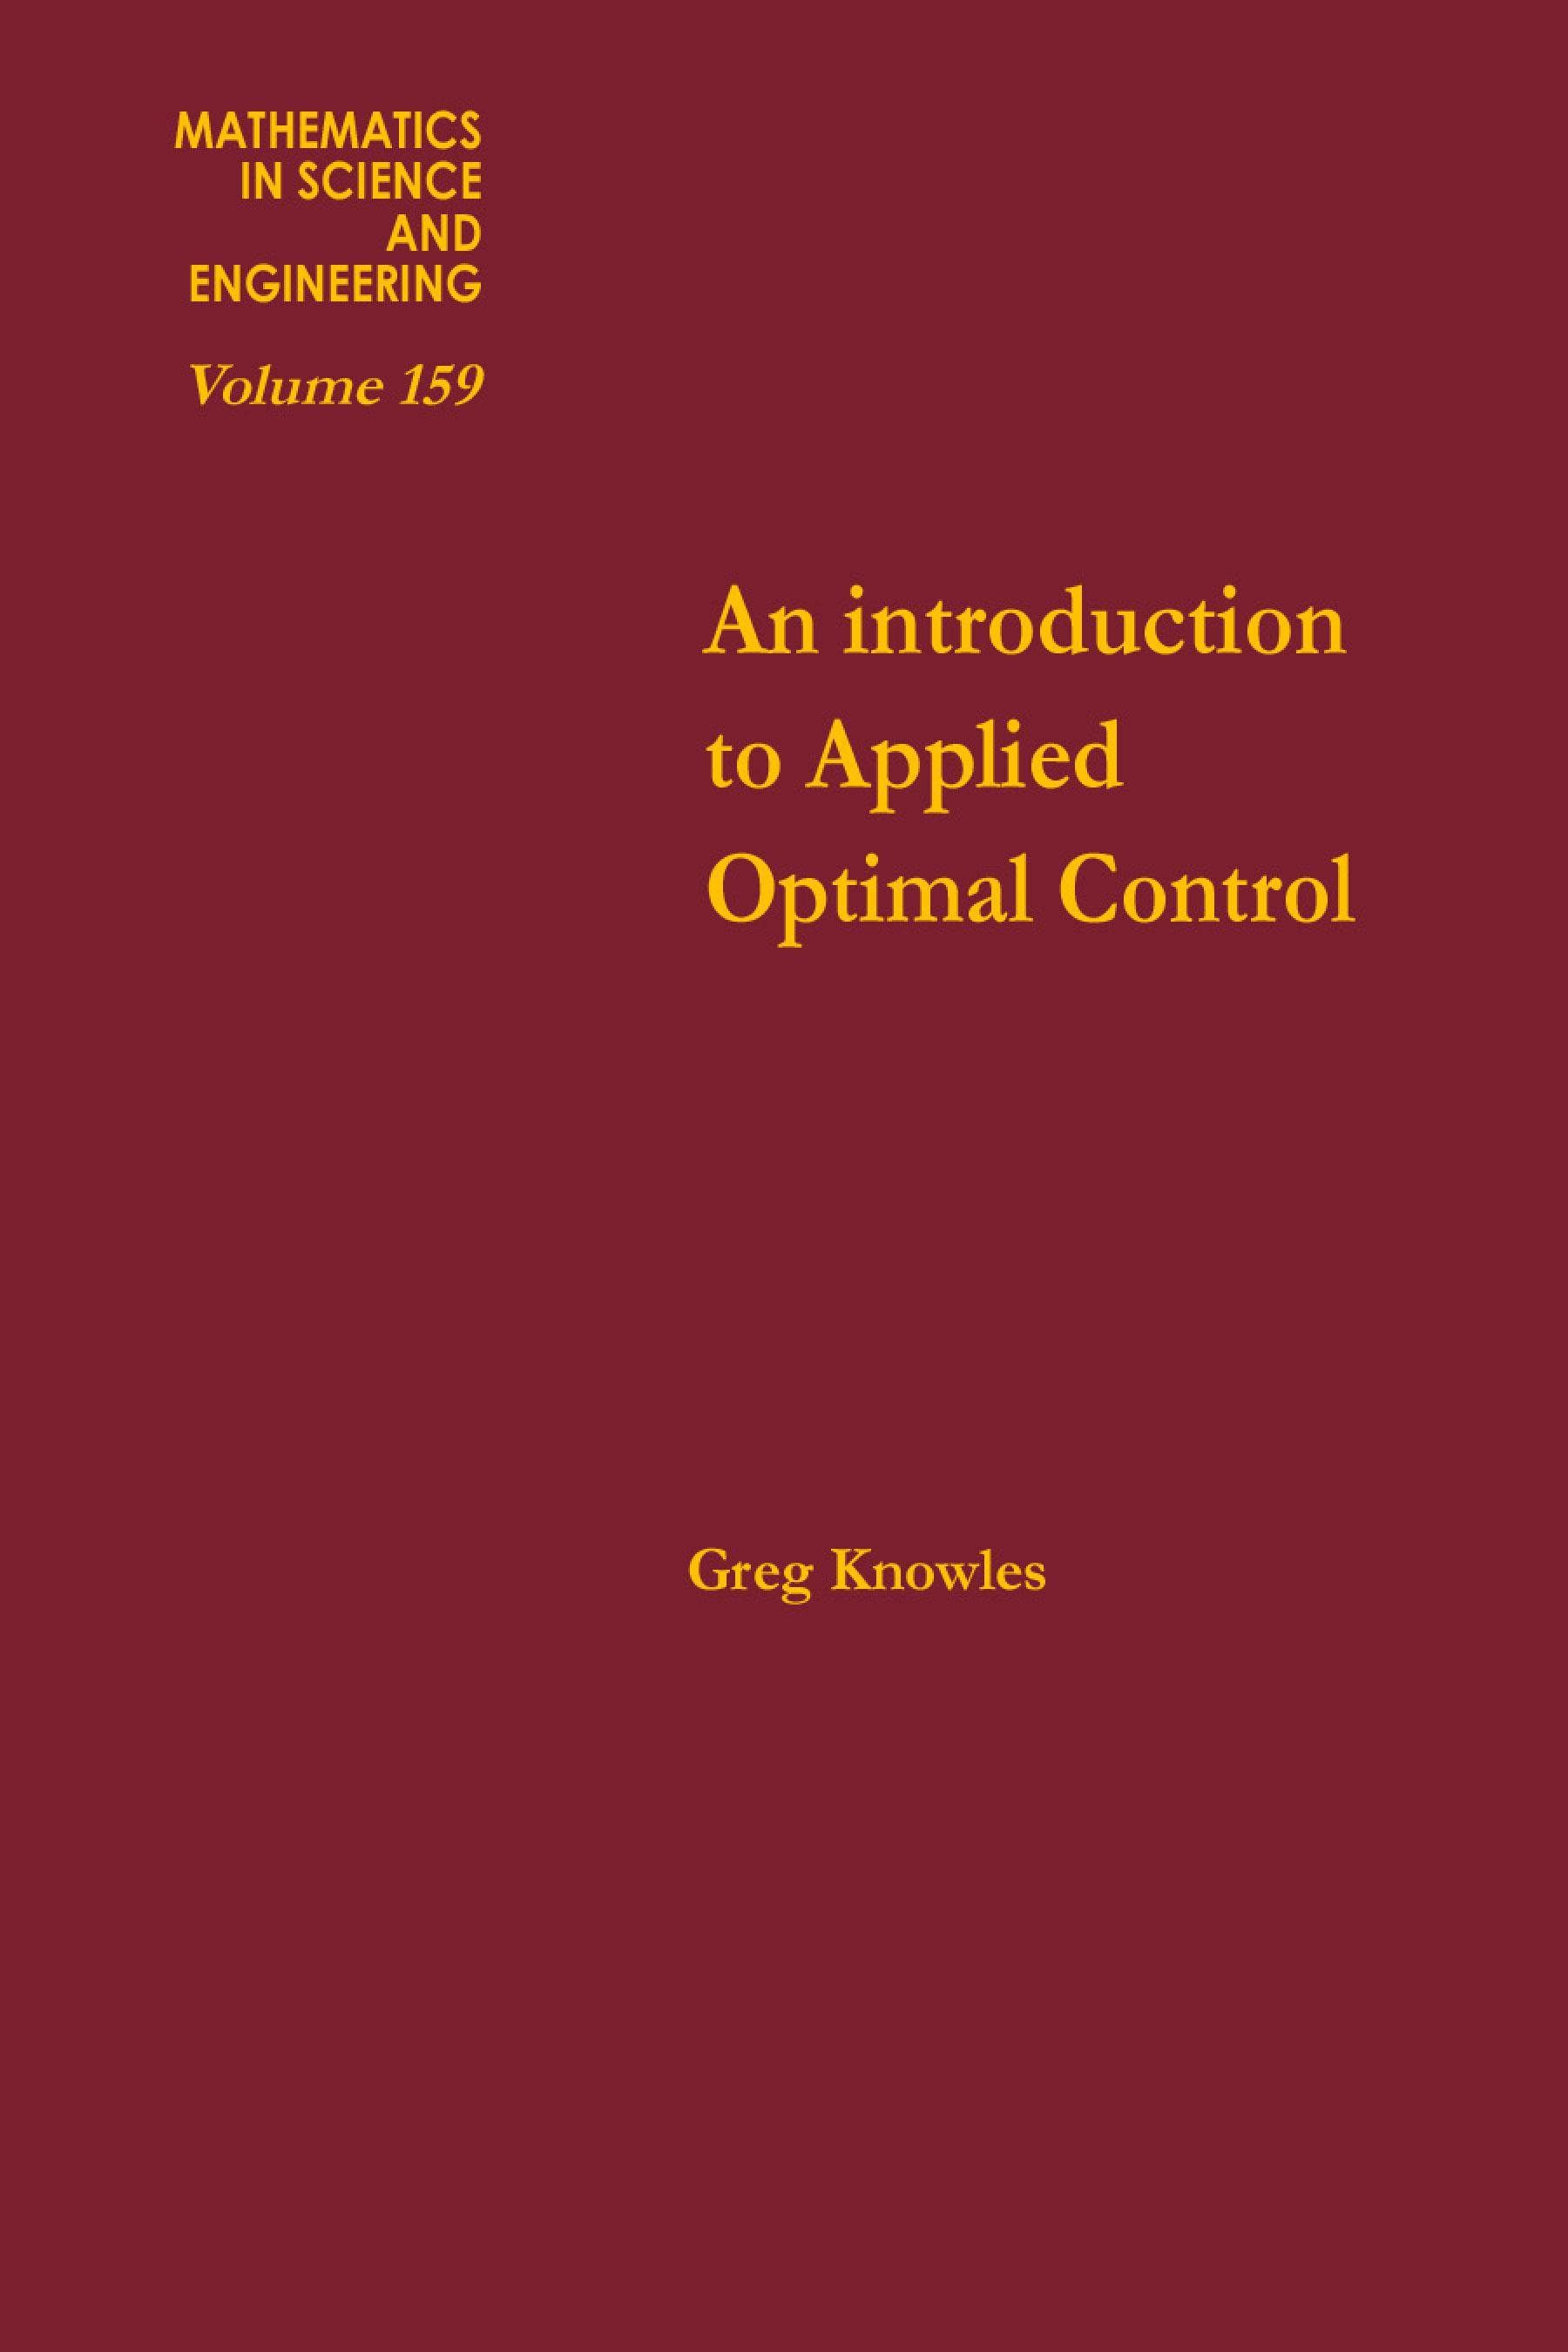 An introduction to applied optimal control